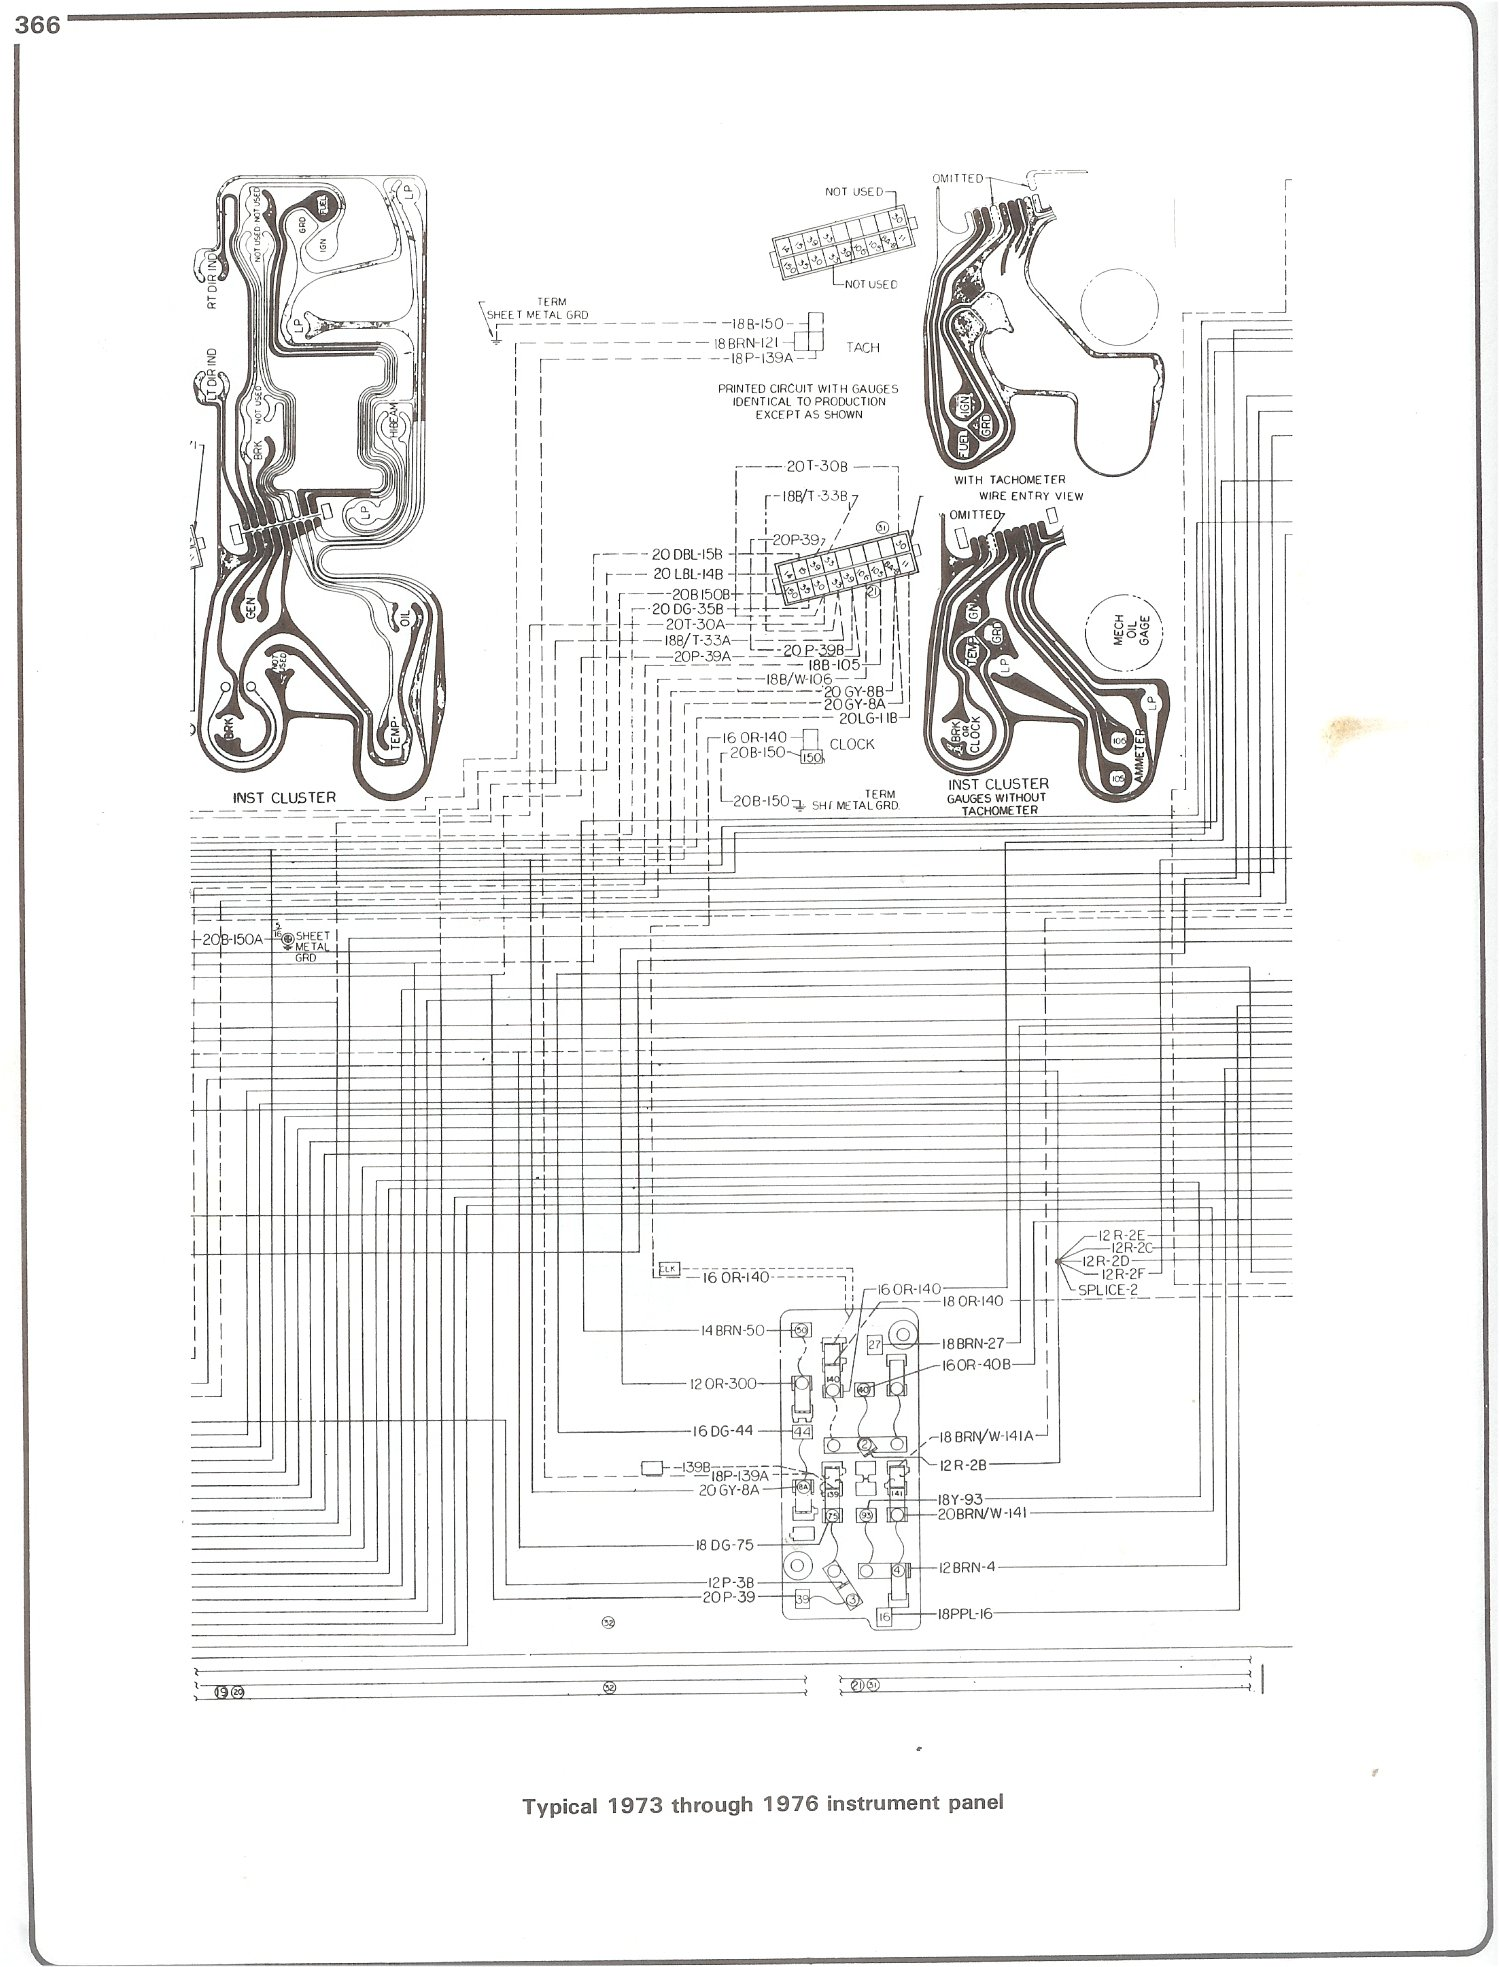 73 76_instrument complete 73 87 wiring diagrams chevy wiring diagrams at n-0.co